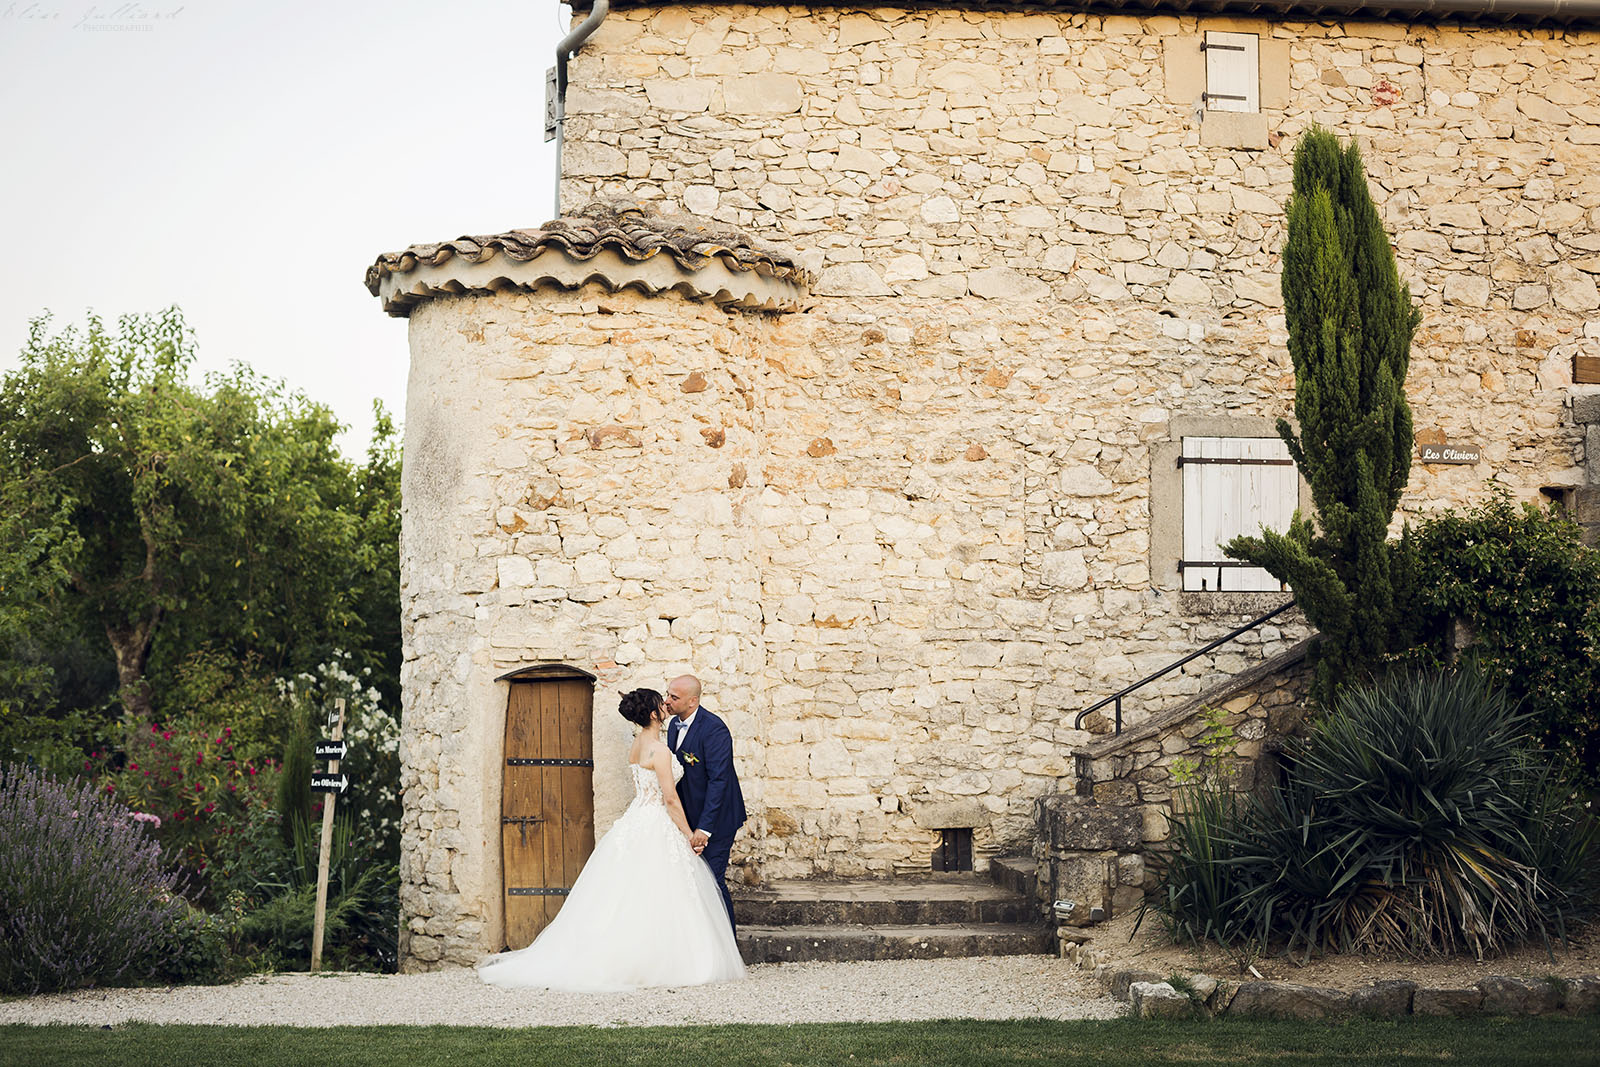 mariage-nimes-provence-alpes-cote-azue-languedoc-occitanie-domaine-la-baraque-de-serignac-alliances-olivier-wedding-reportage-seance-photo-couple-elise-julliard-photographe-2